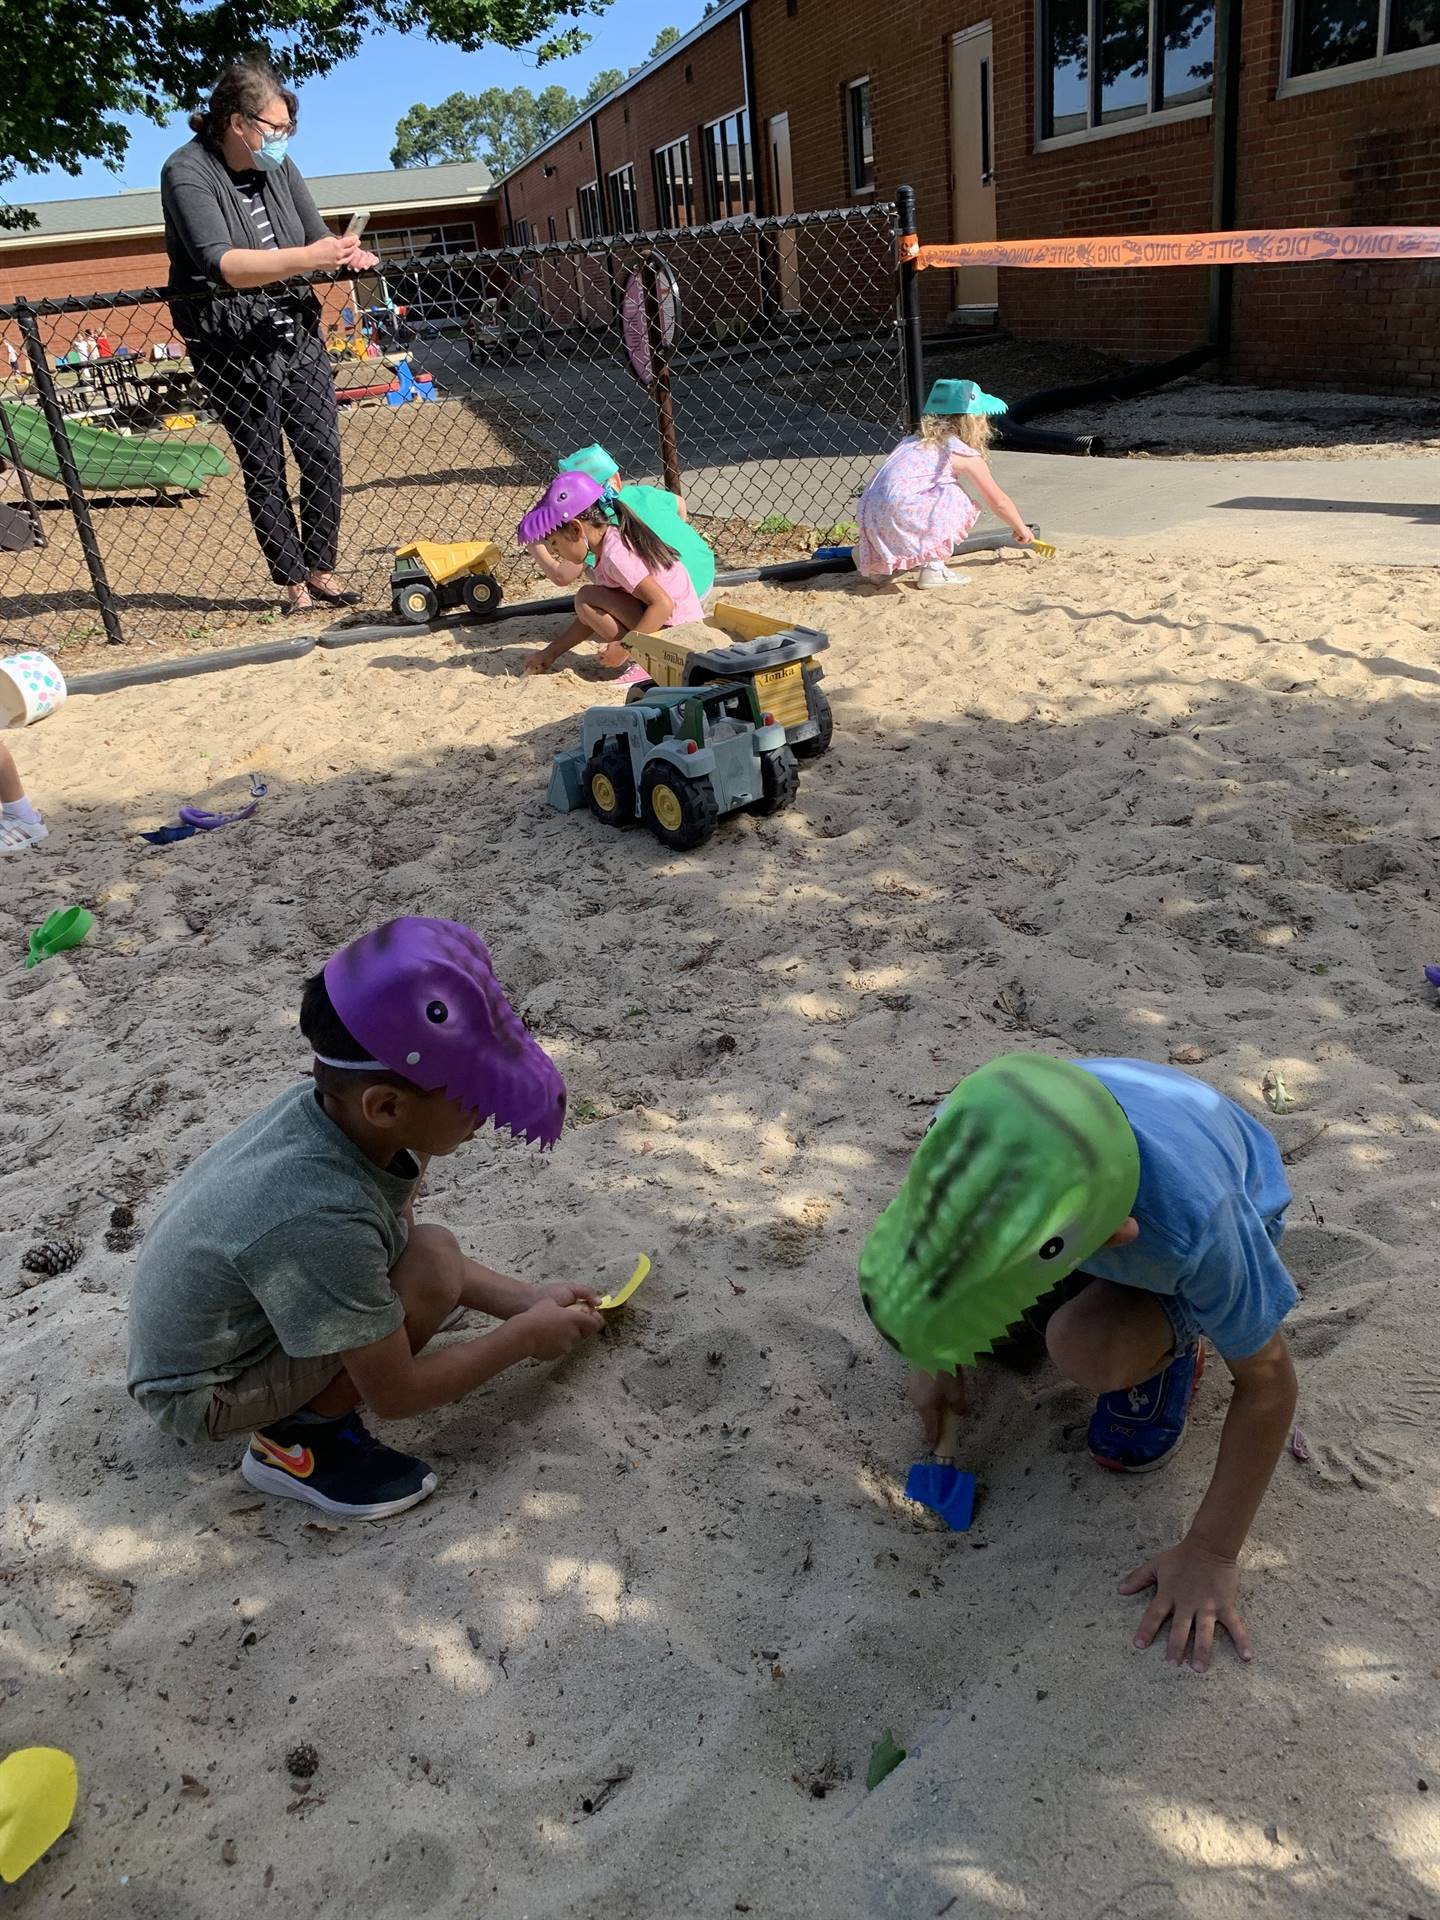 4K digging for dinosaur fossils on the playground